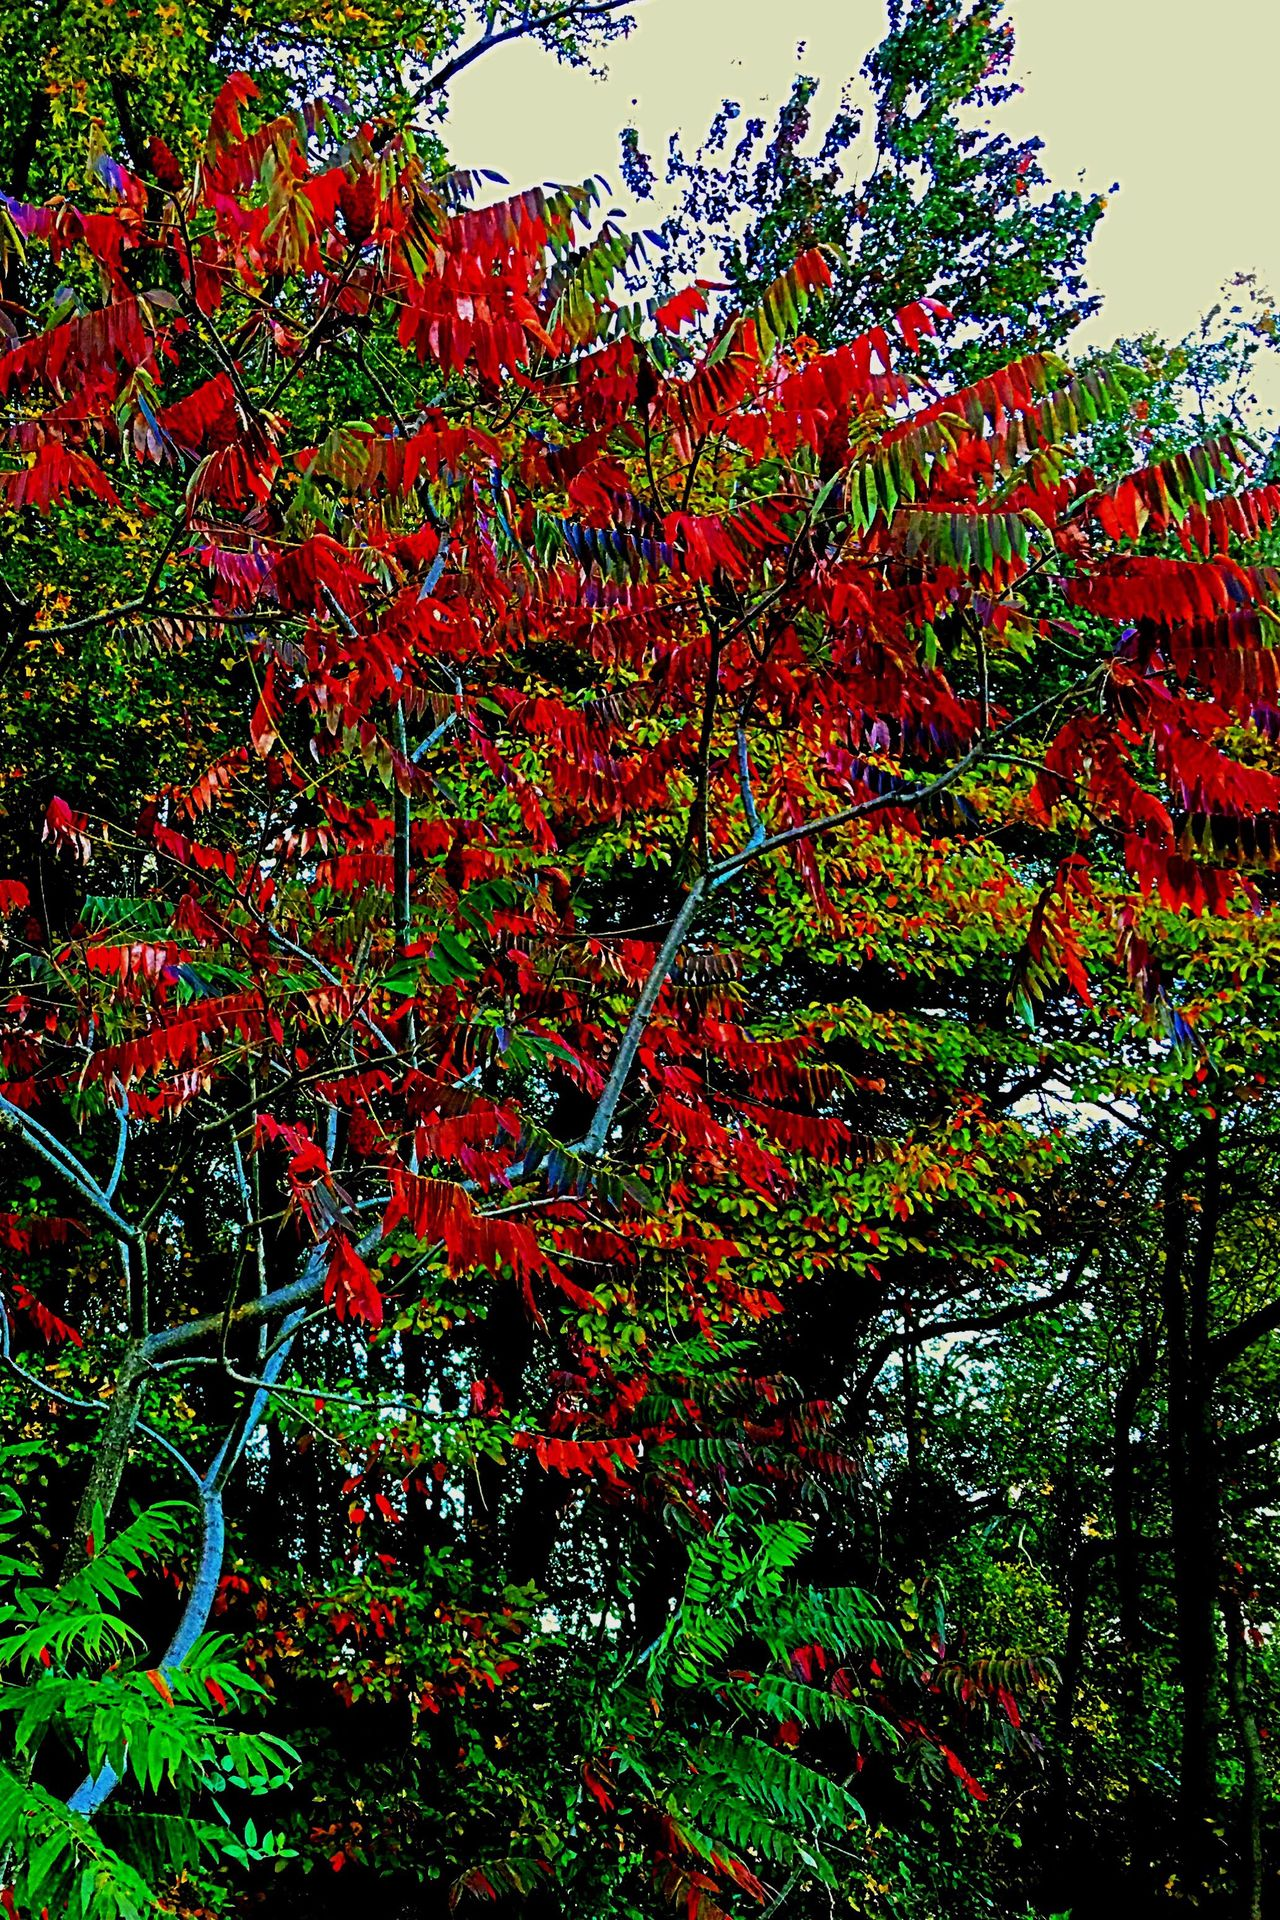 Unique tree in woods Outwalking Taking Pictures Red Growth Nature Leaf Tree No People Beauty In Nature Outdoors Day Branch Green Color Camerafilters Colorphotography Fall Beauty Fallfoliage Iphonephotography Tranquility